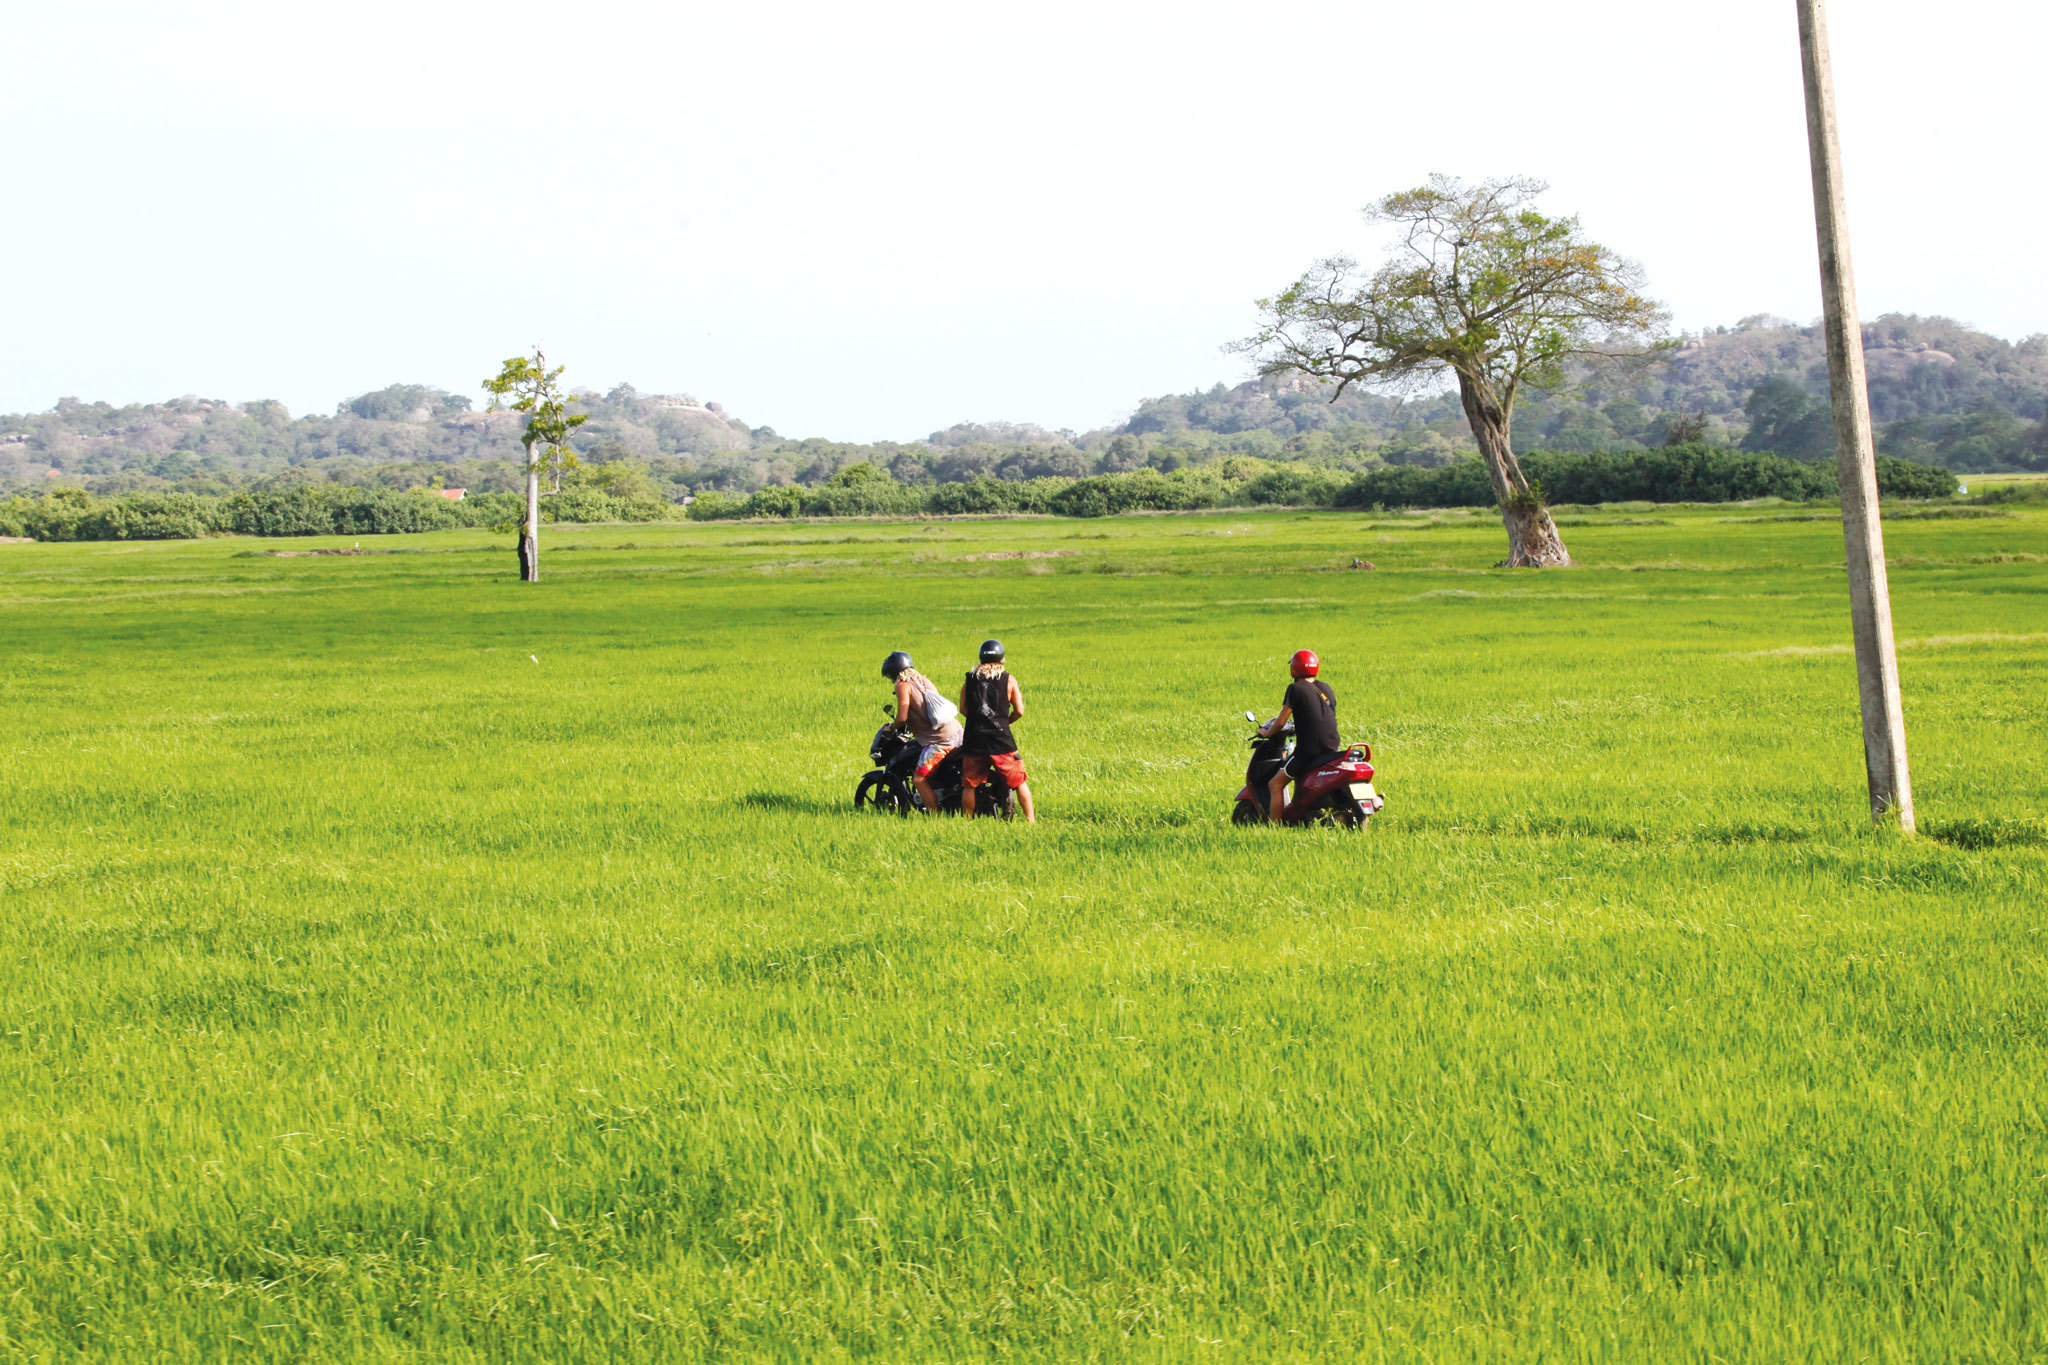 Explore the paddy fields